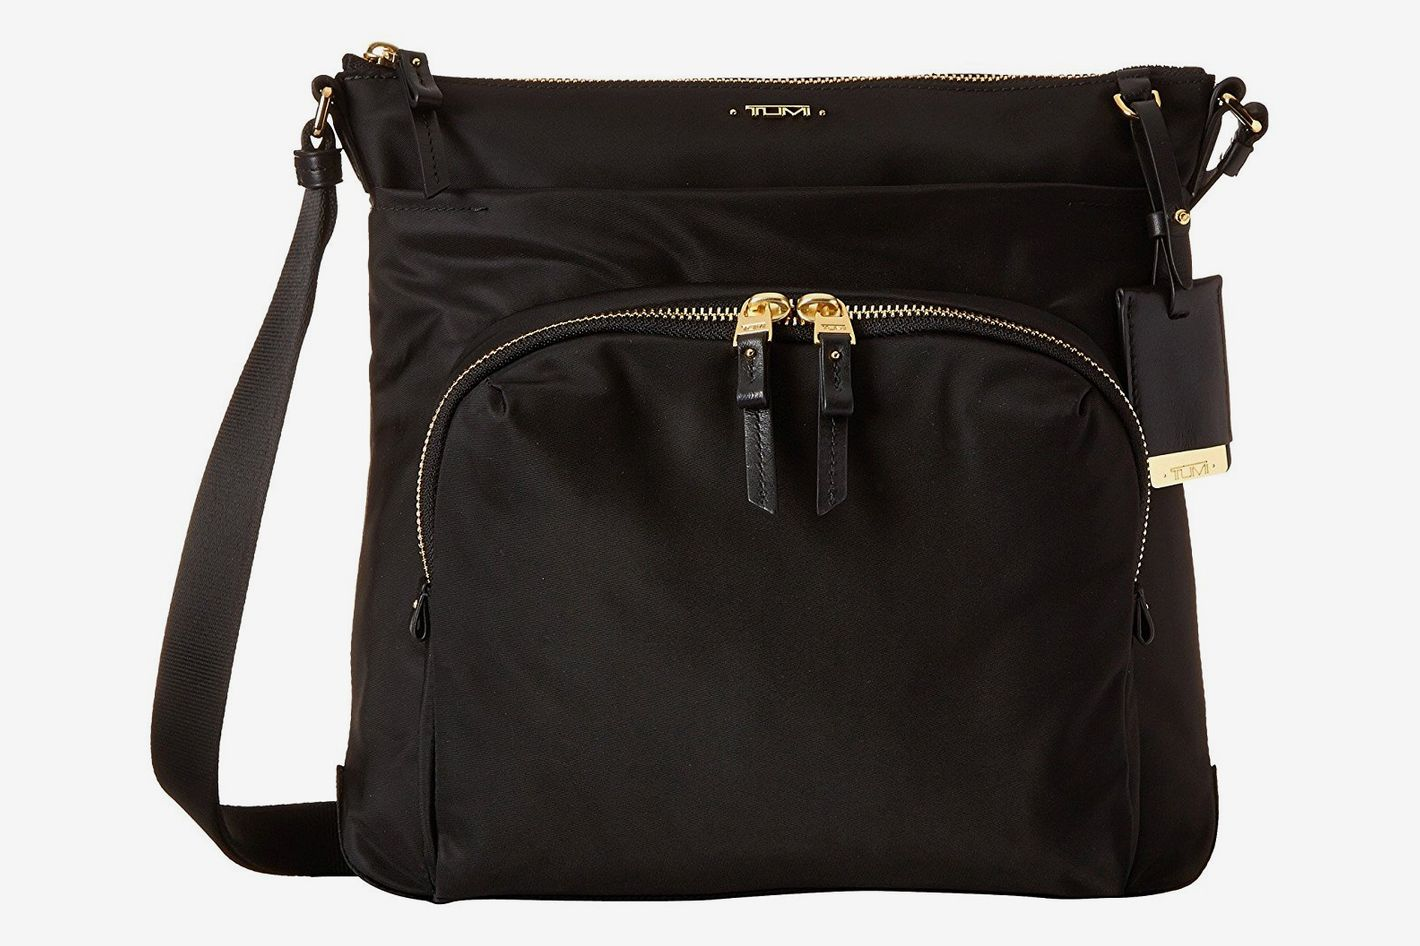 414a089c4e3c The Best Cross-body Travel Bags 2018